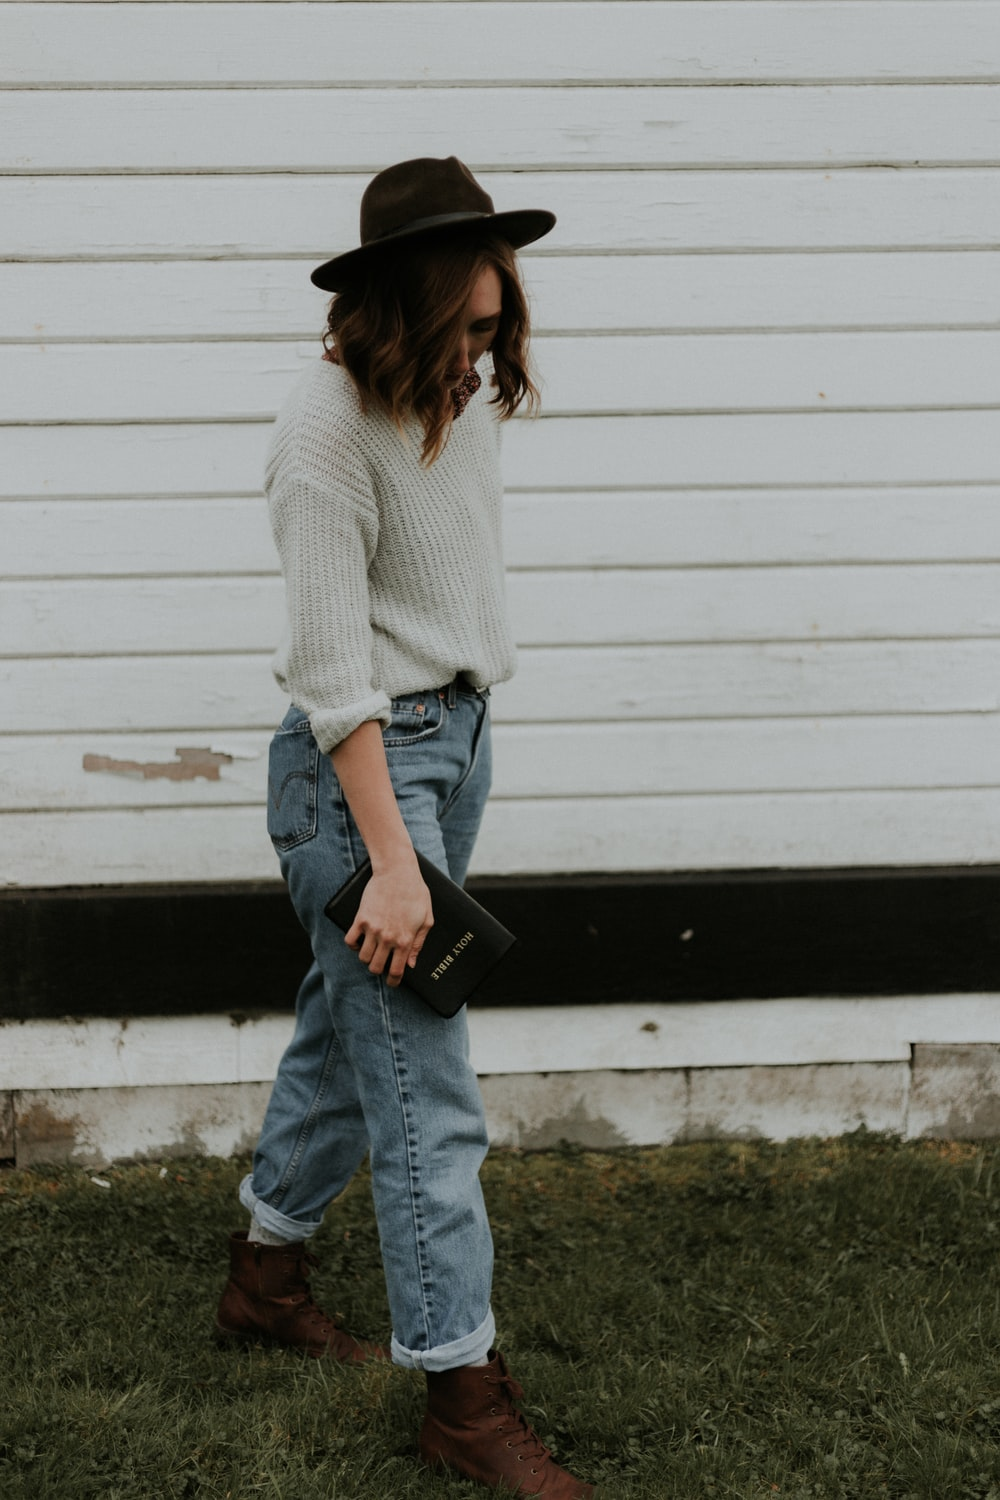 gray long-sleeved shirt and blue denim jeans